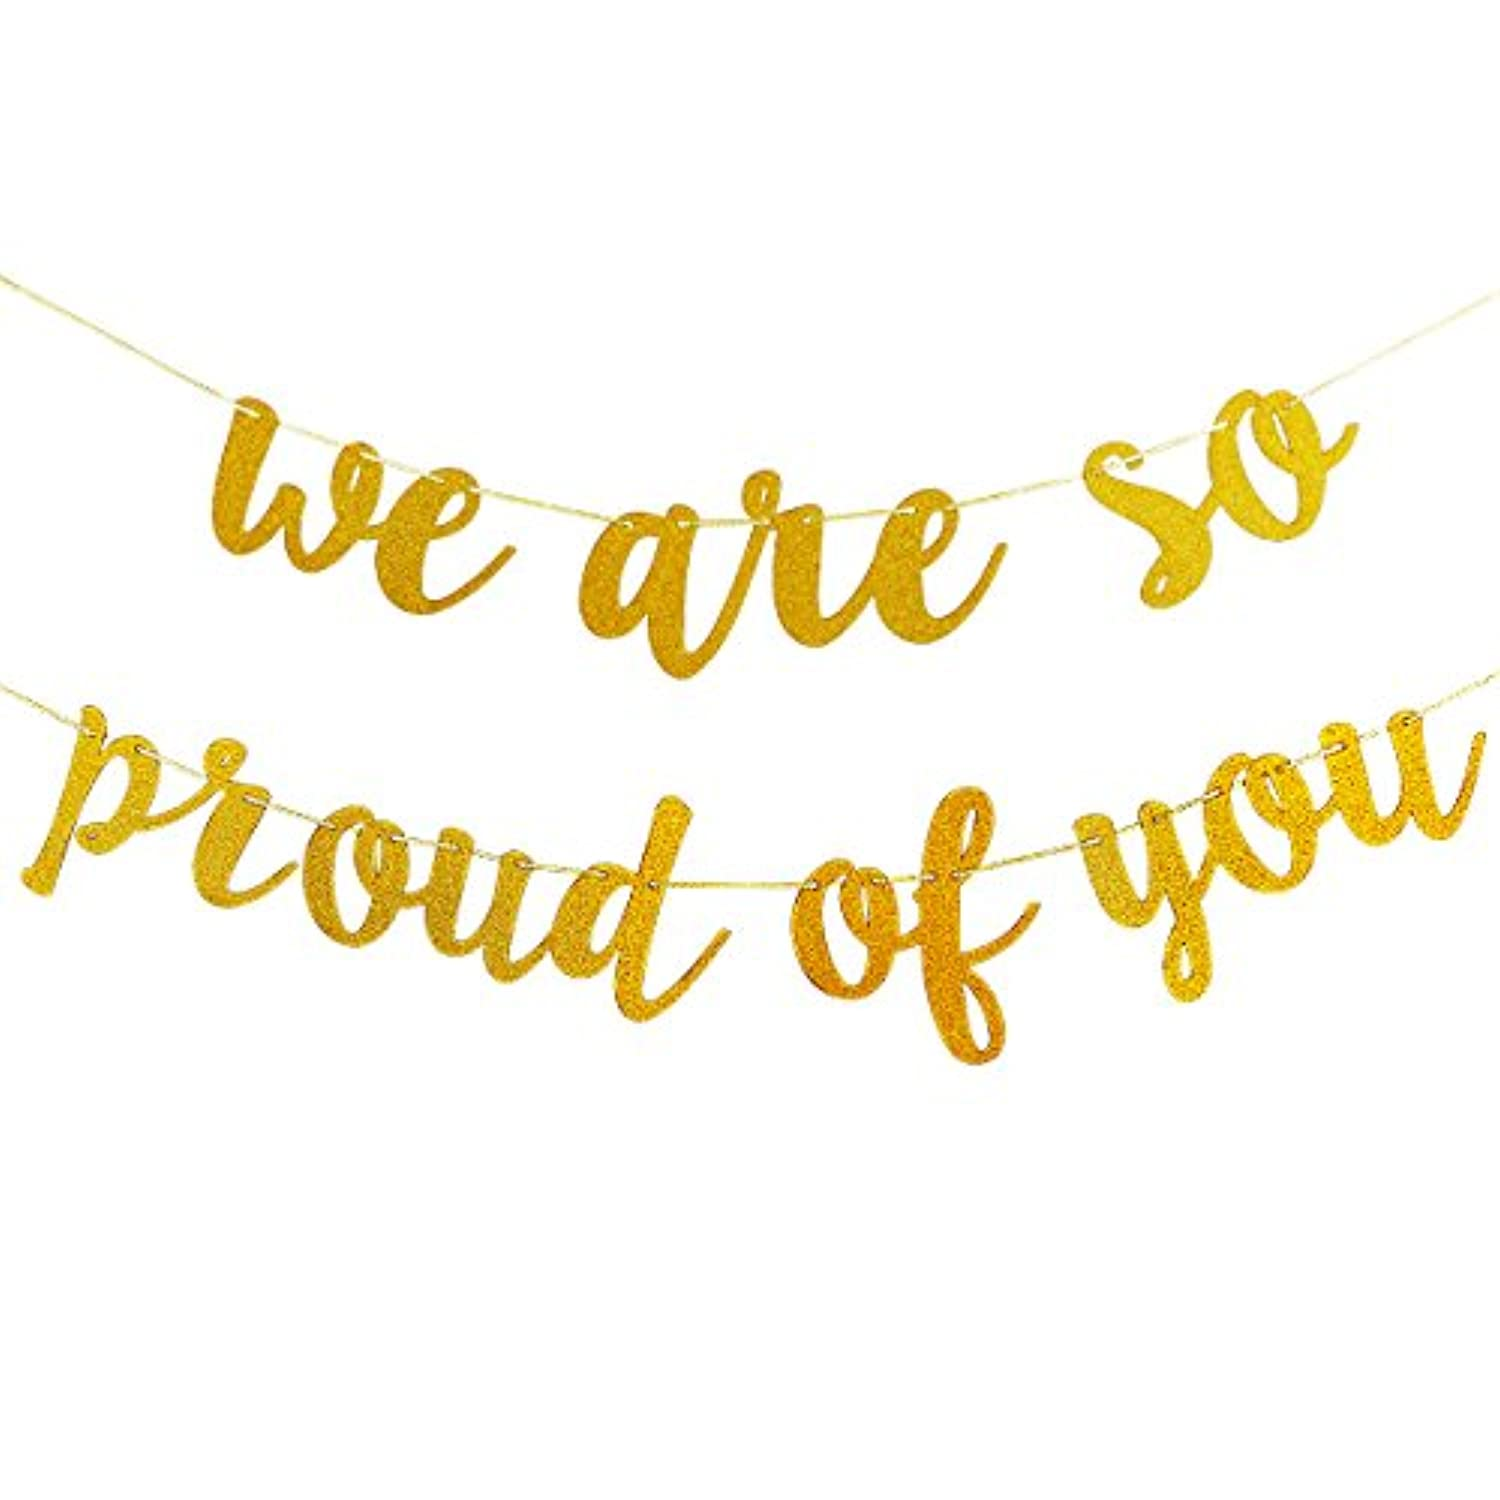 Gold Glittery We are So Proud of You Banner,for Graduation Party/Grad Party Decorations